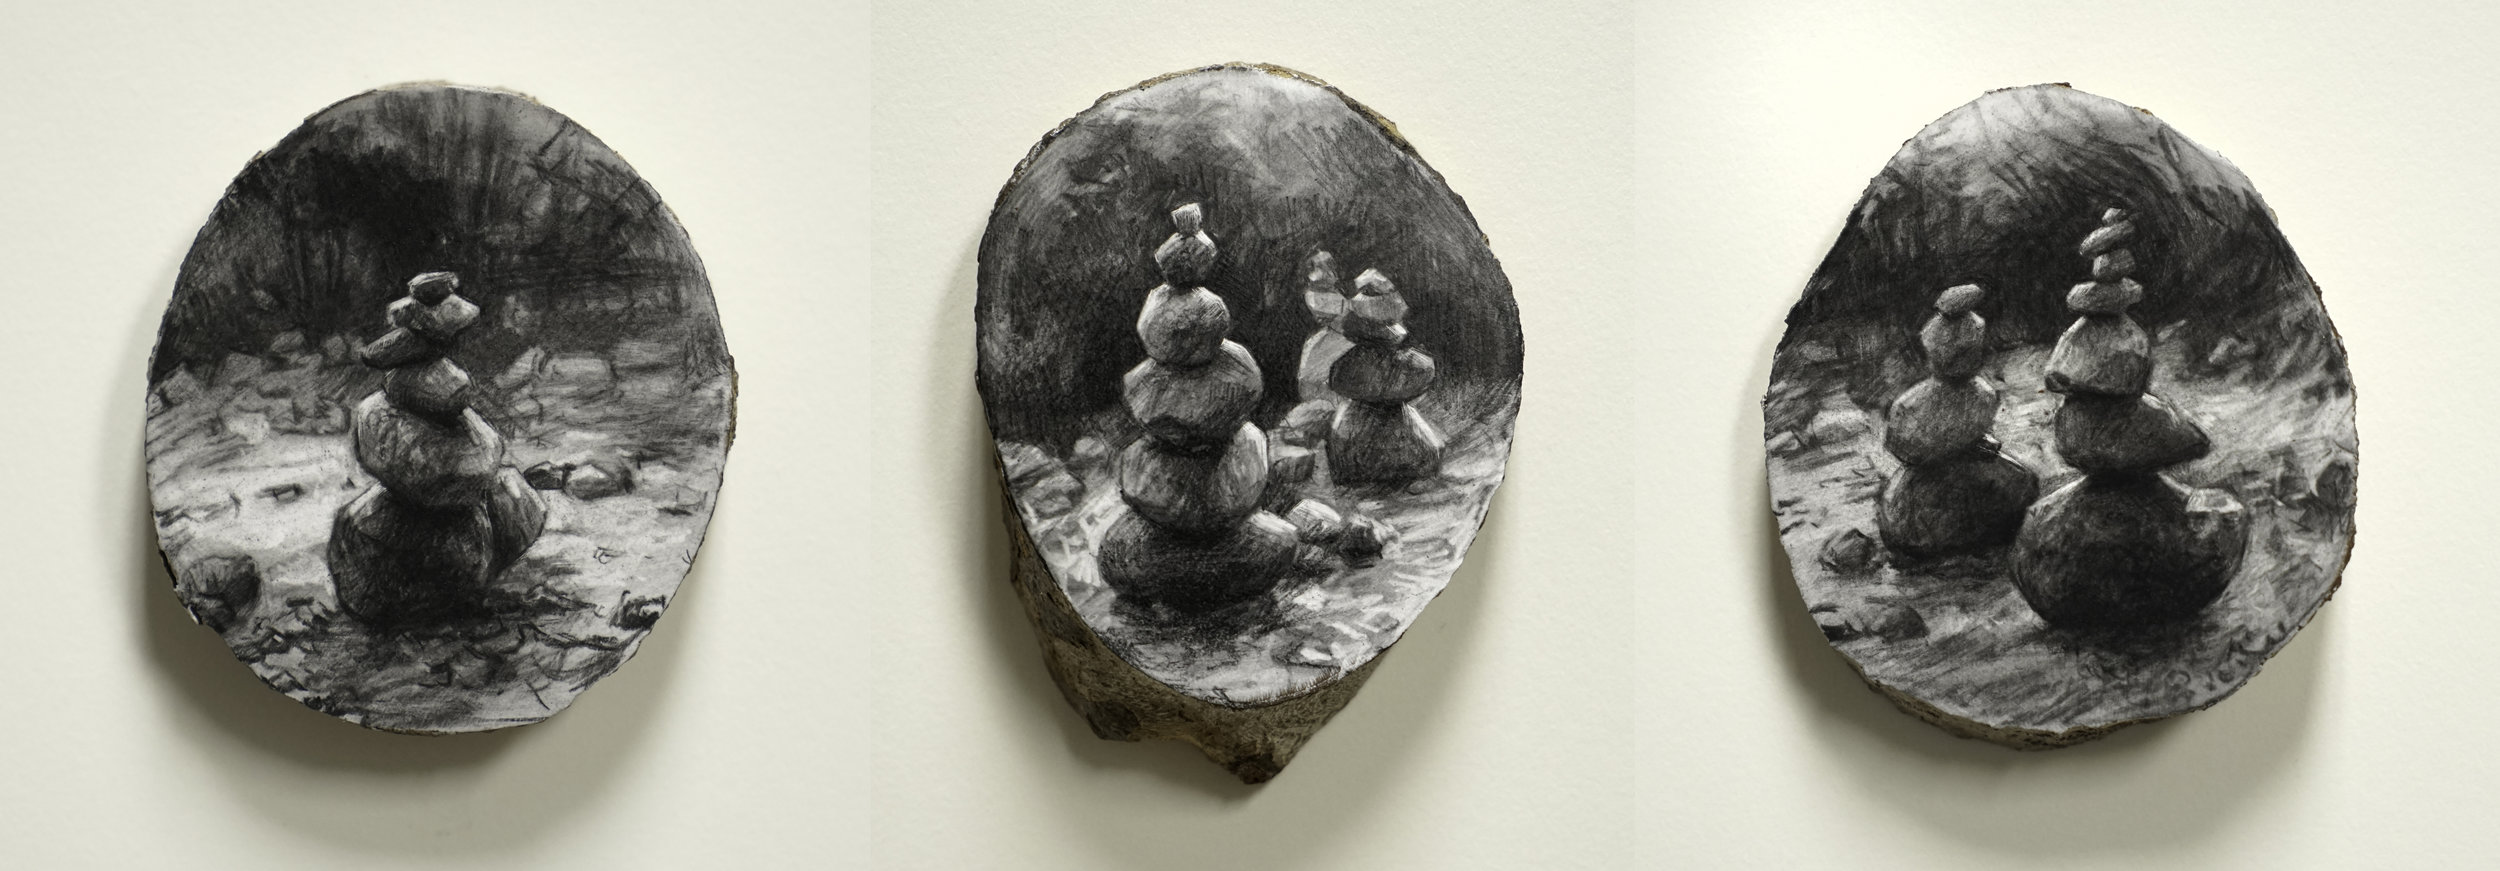 Cairn I, II, III,  2017. 3 x 3 inches each. Charcoal on sliced tree branch. Private collection.